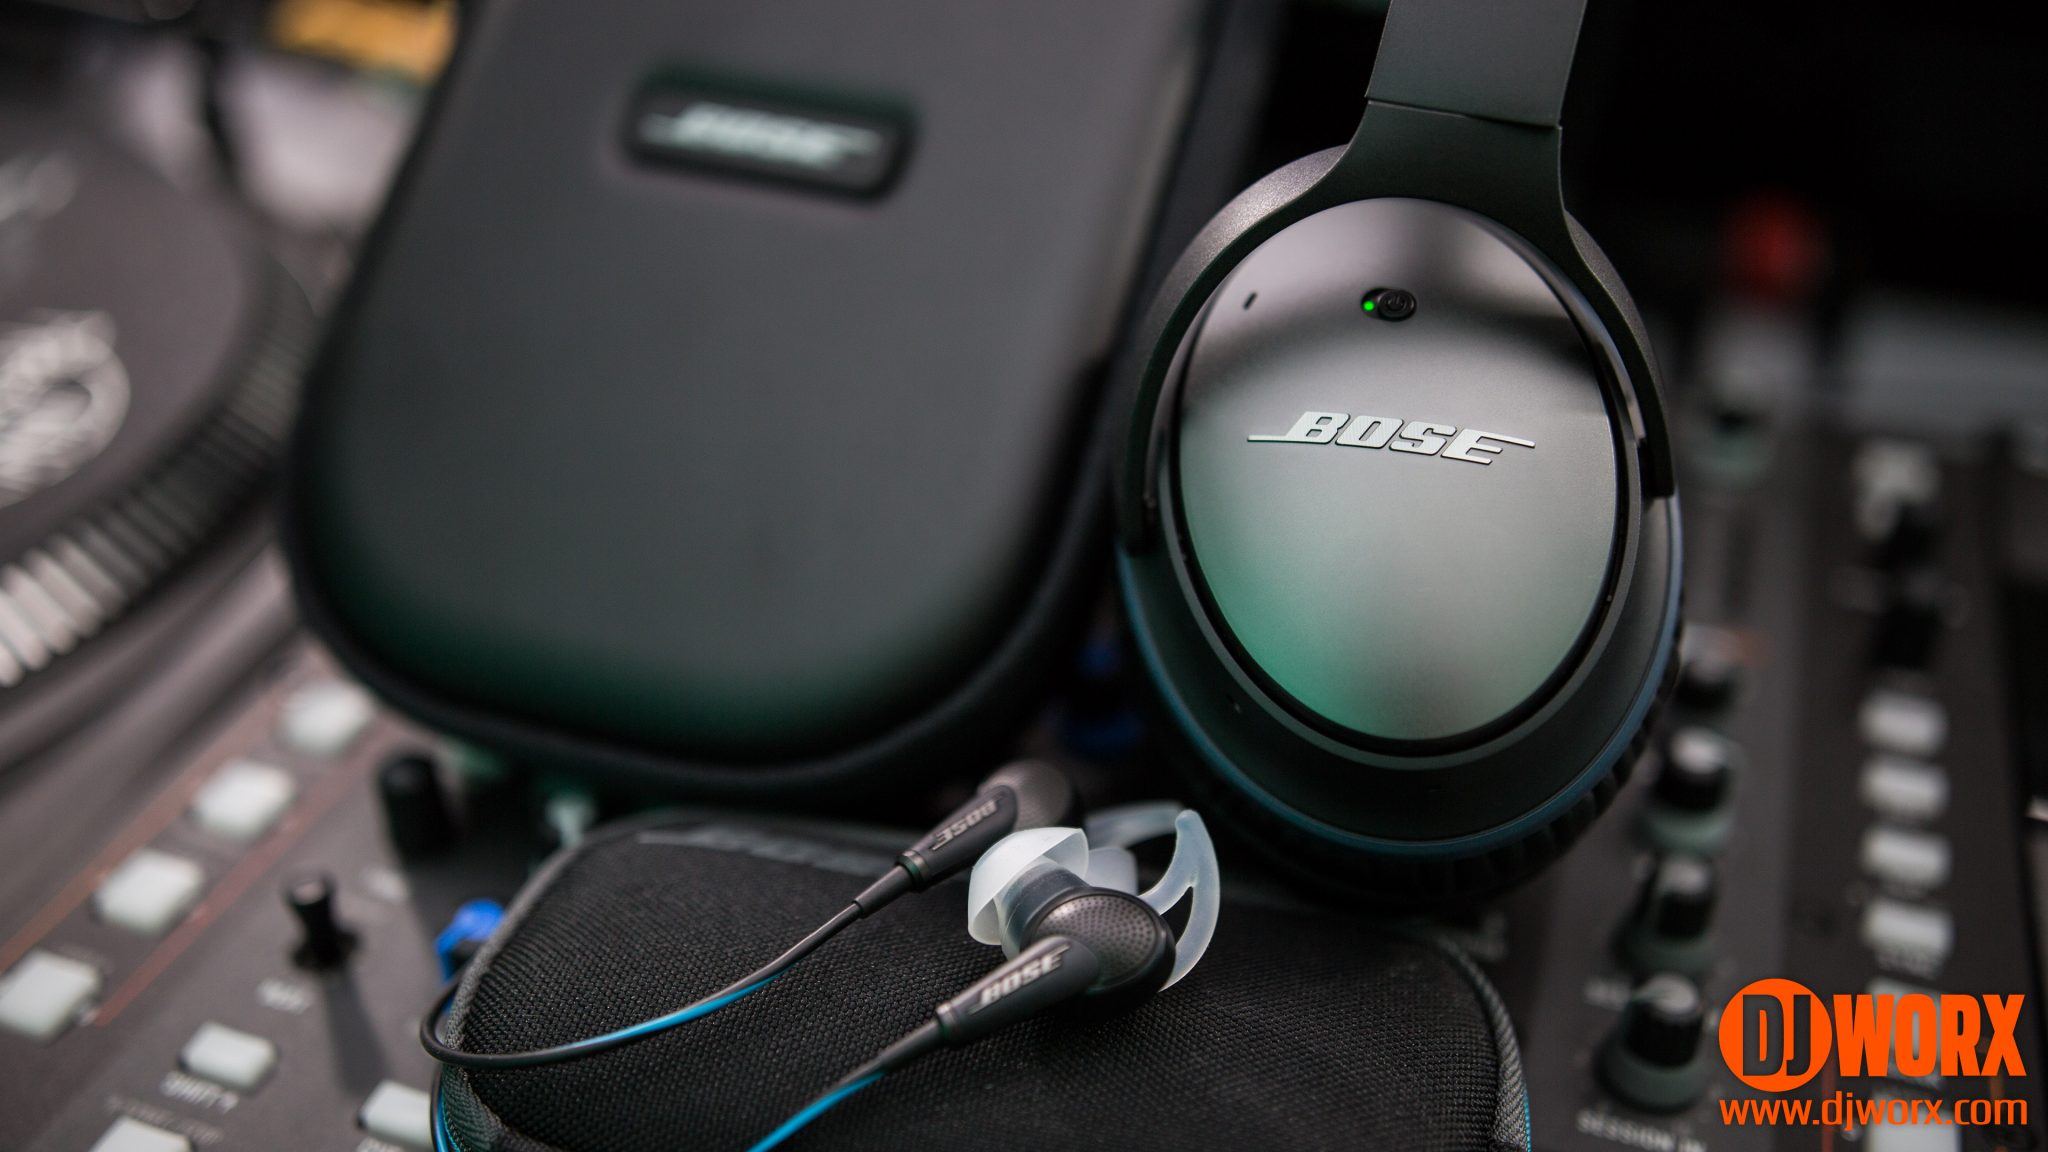 bad9efd14c2 REVIEW: Bose QC20 and QC25 noise-cancelling headphones | DJWORX